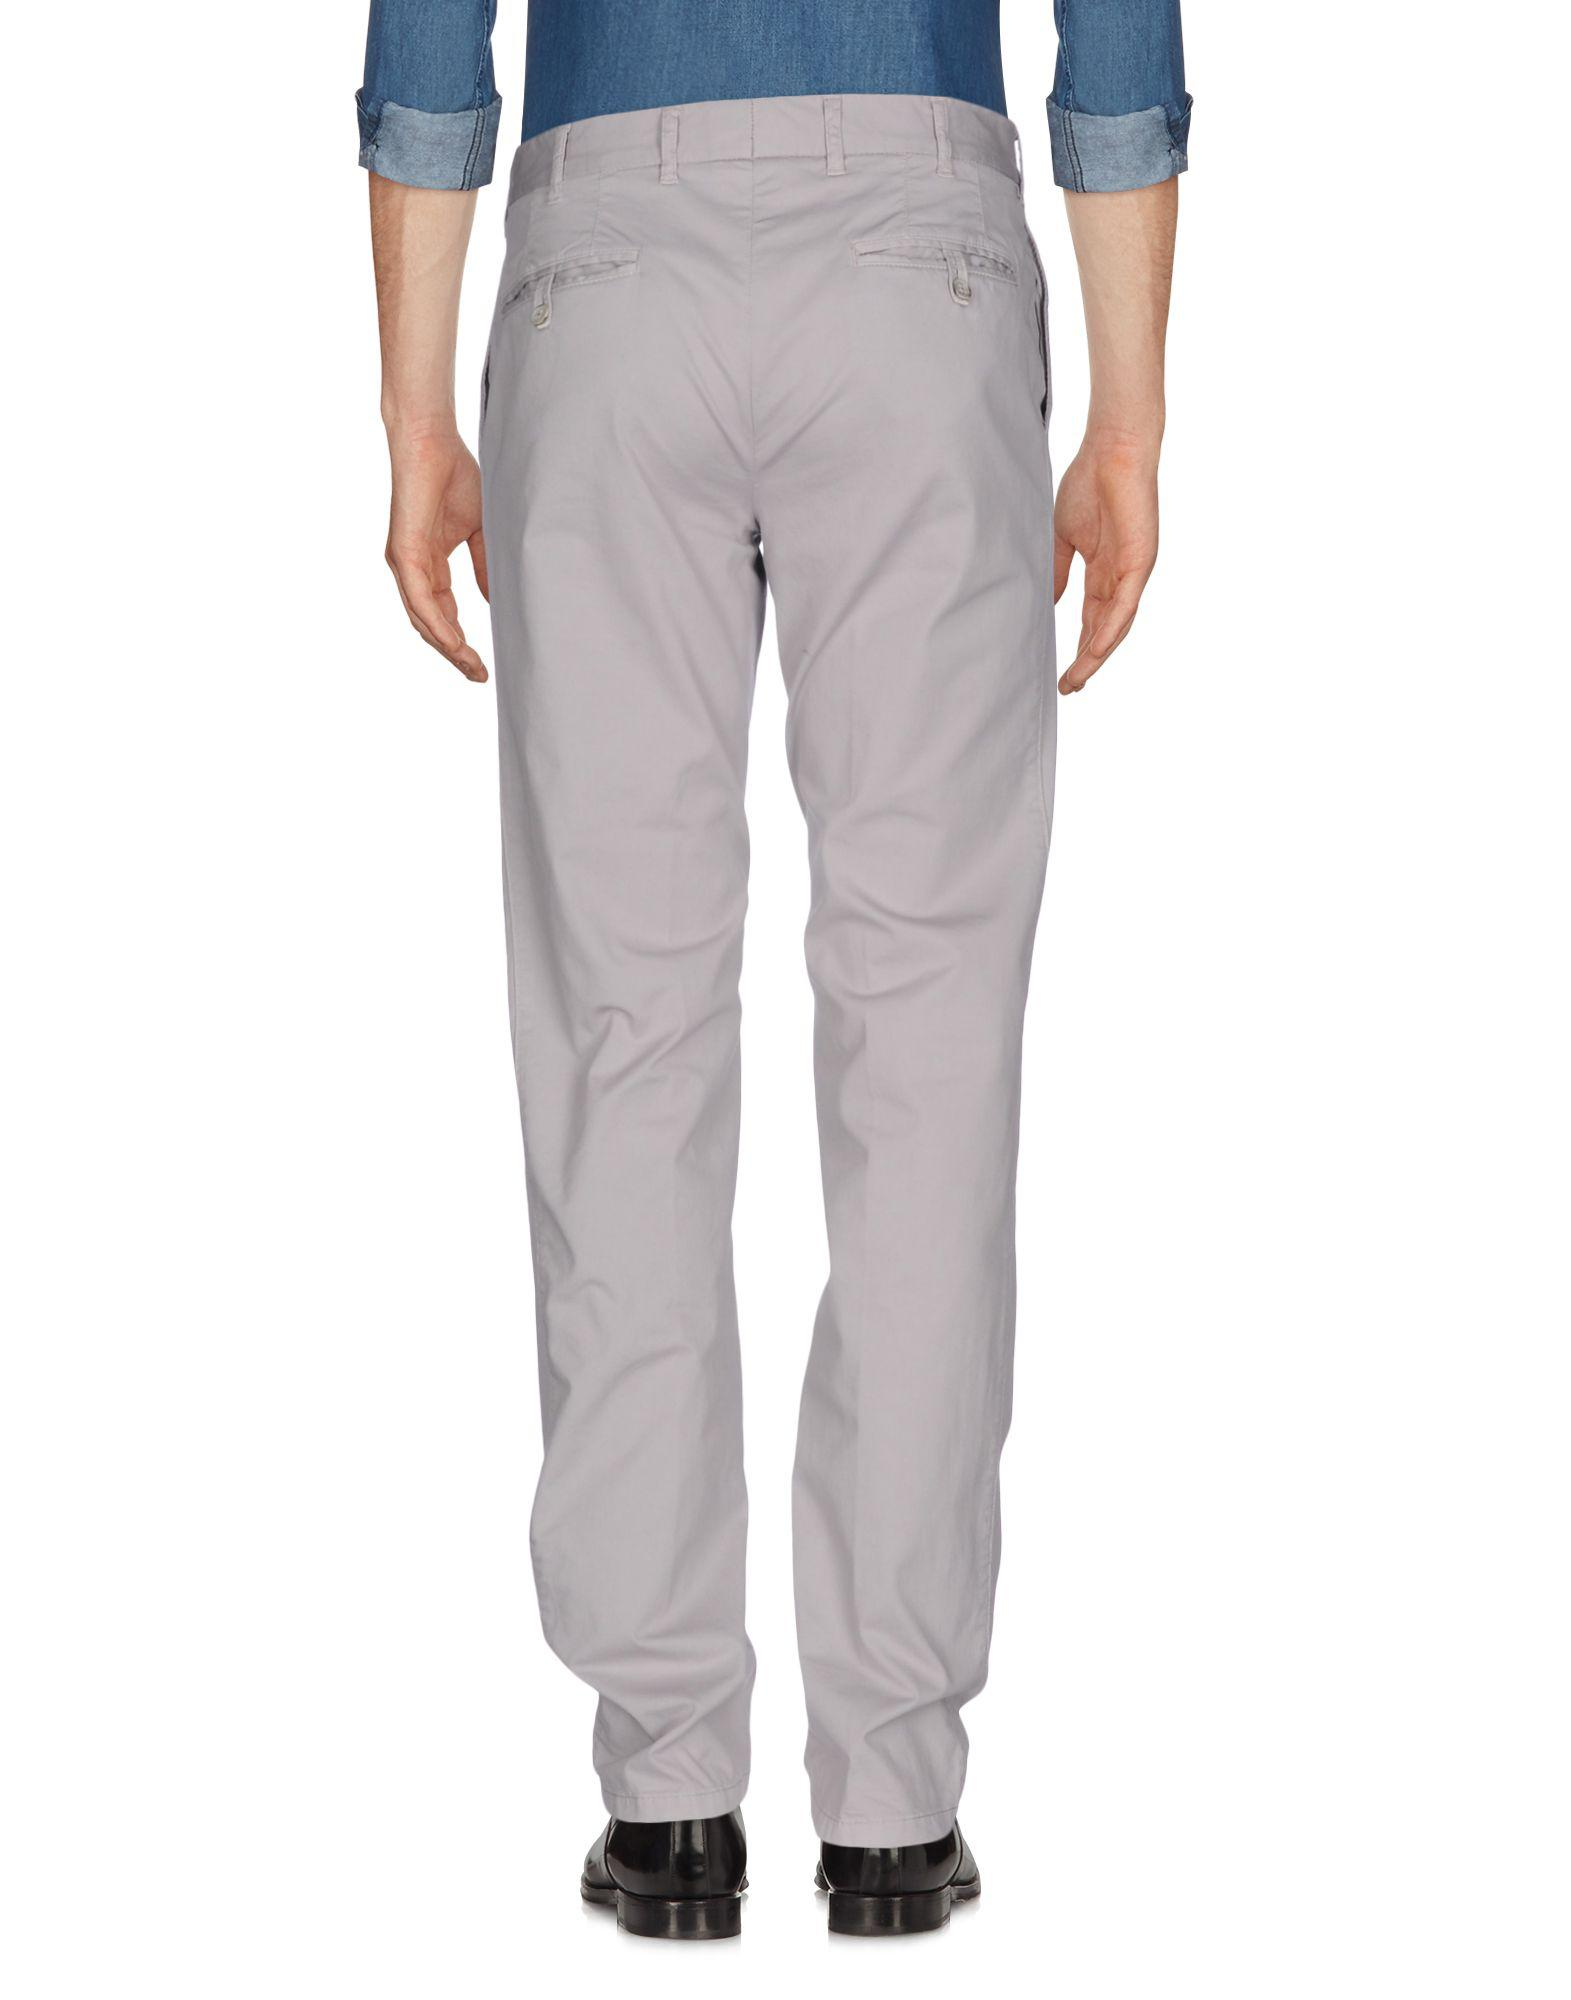 L.B.M. 1911 Cotton Casual Pants in Grey for Men